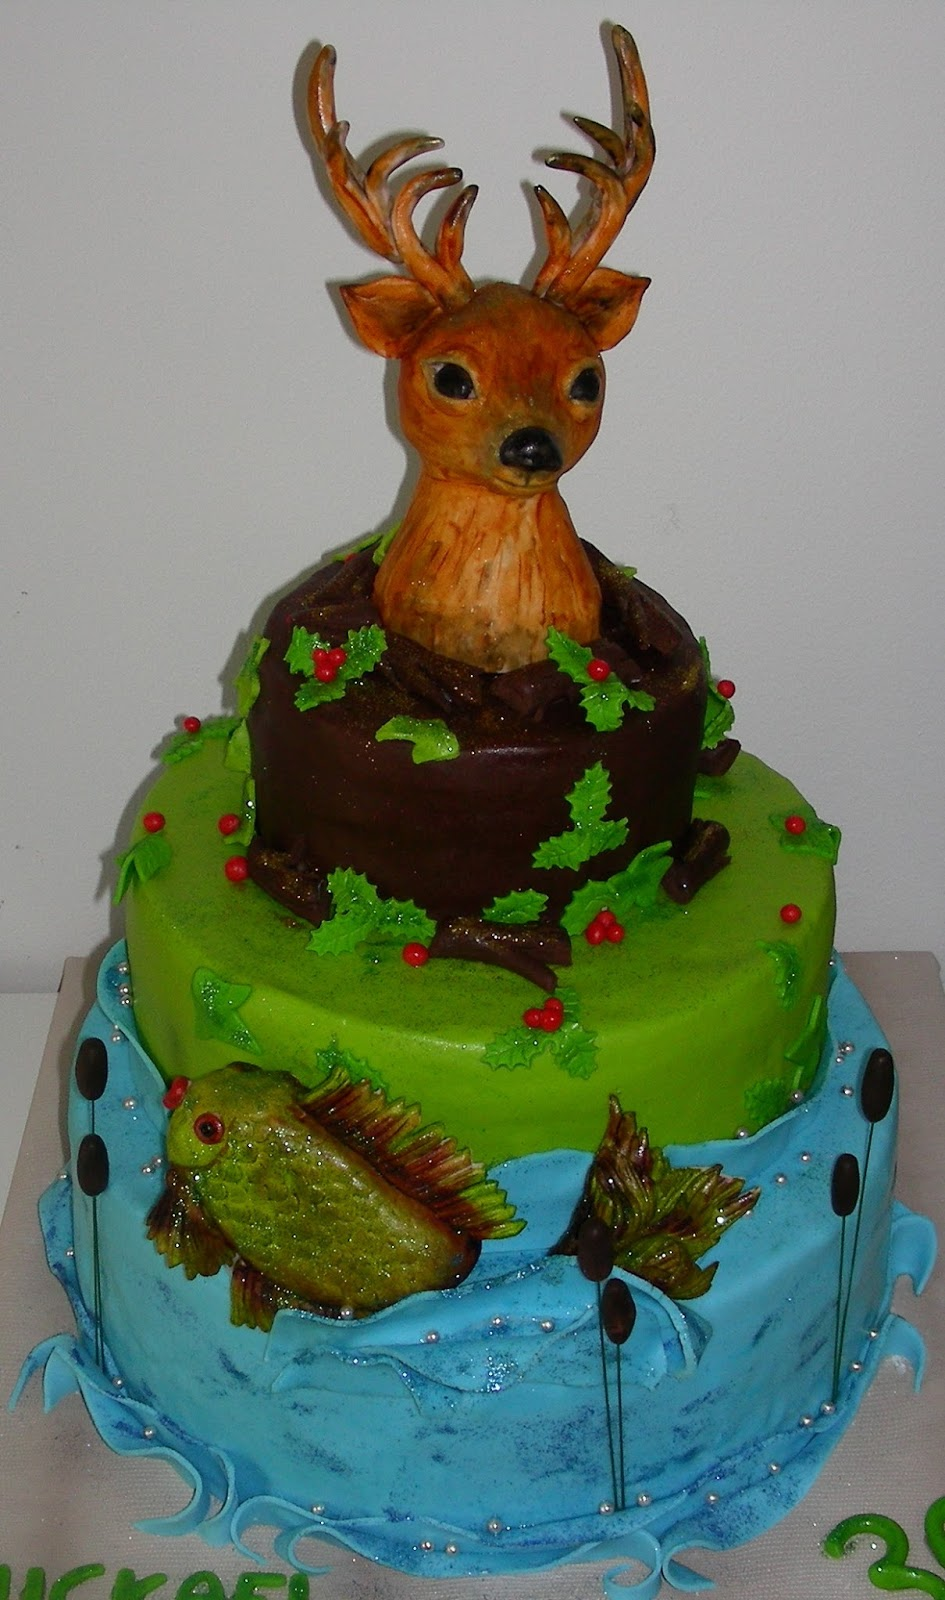 Decoration Gateau Anniversaire Chasse Home Baking For You Blog Photo